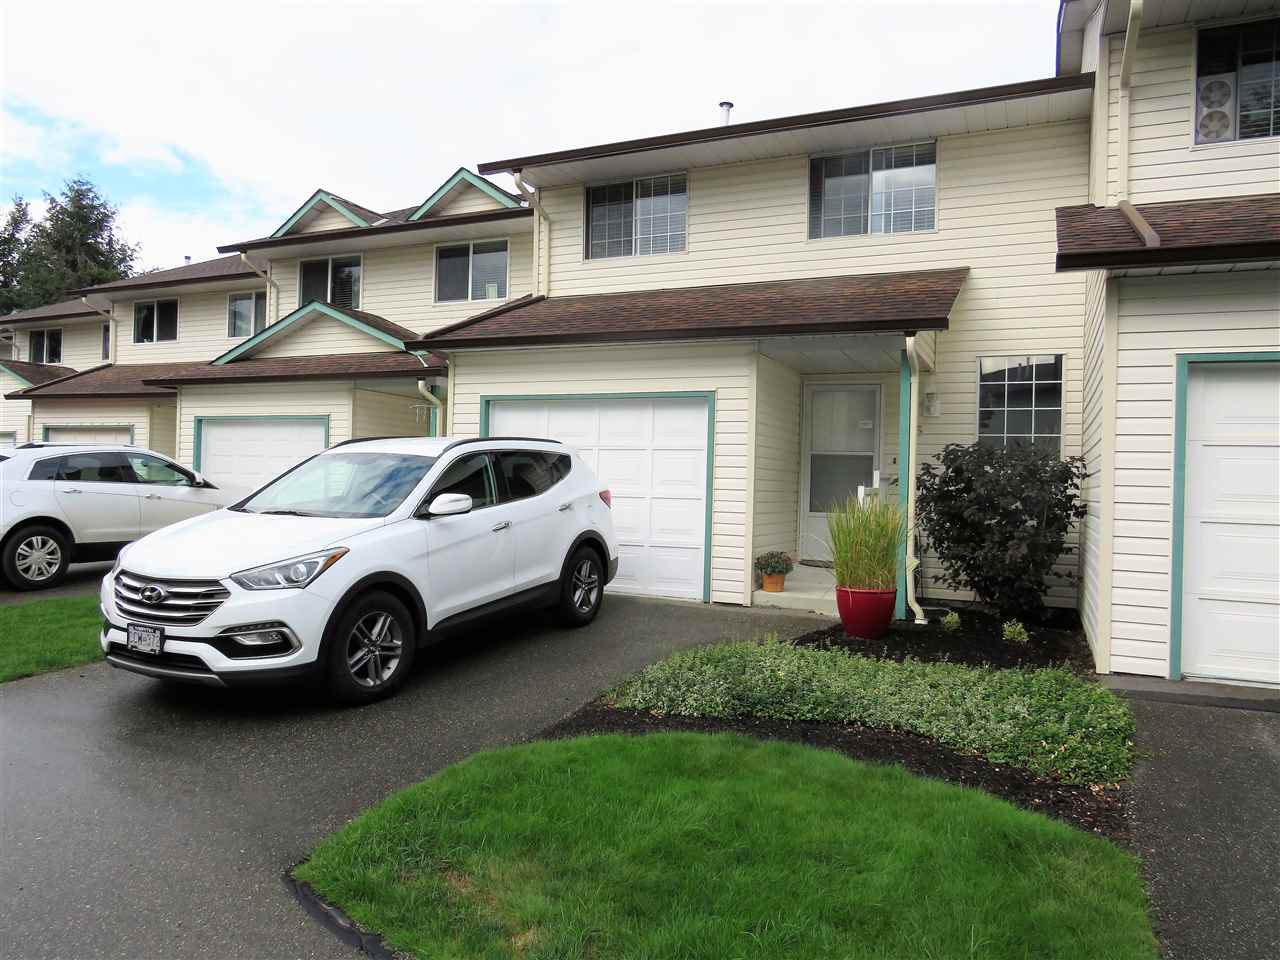 "Main Photo: 5 45640 STOREY Avenue in Sardis: Sardis West Vedder Rd Townhouse for sale in ""WHISPERING PINES"" : MLS®# R2306187"